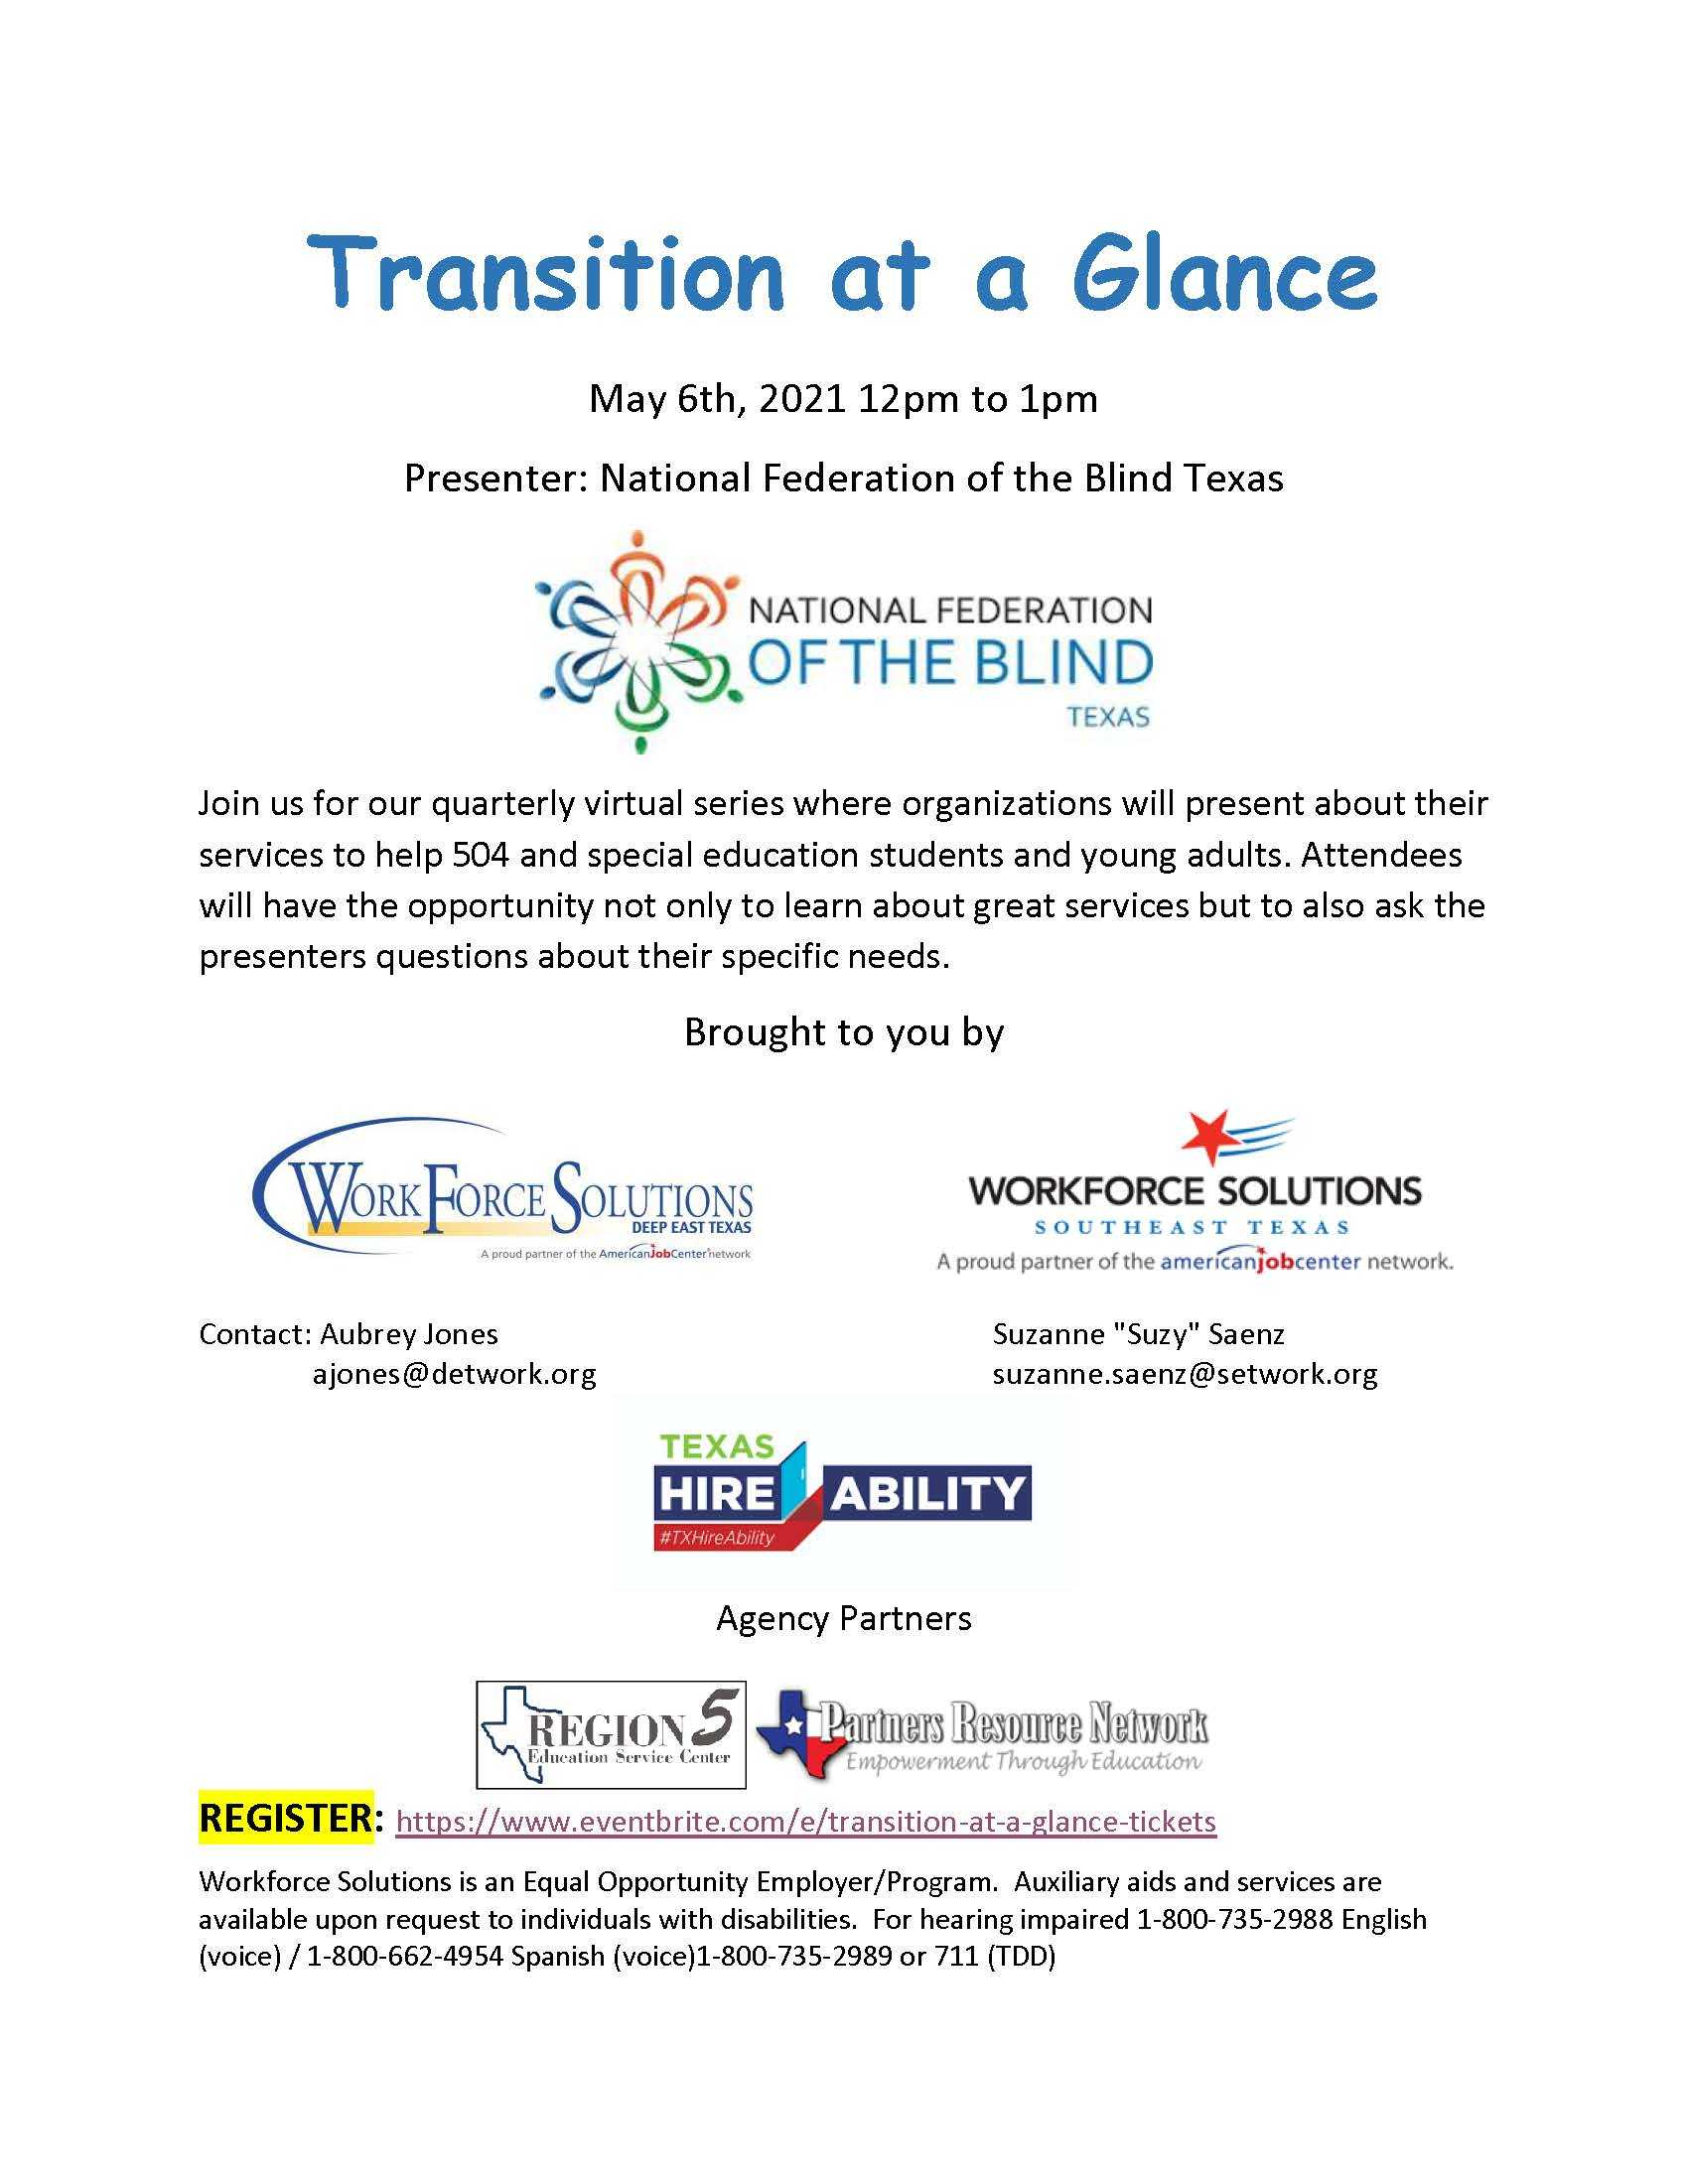 Resources for the Blind - Transition Series May 6